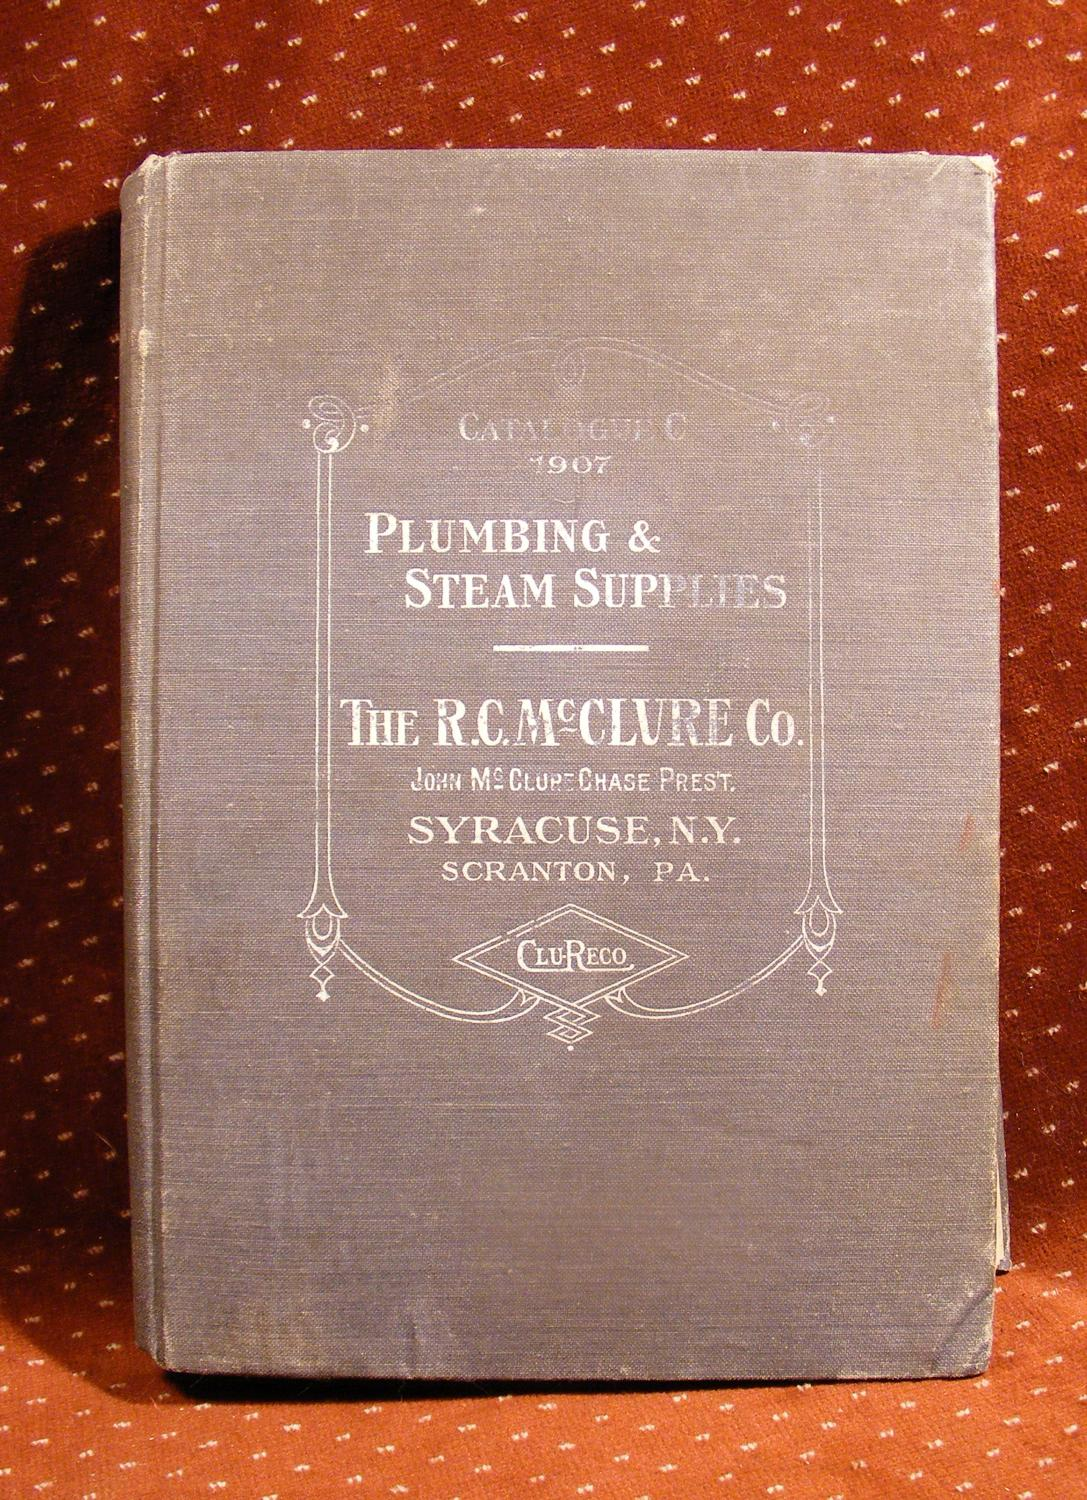 Catalogue C THE R. C. MCCLURE CO. PLUMBING SUPPLIES FIXTURES, TOOLS AND SPECIALITIES OF EVERY DESCRIPTION Fair Hardcover 10 5/8  X 7 1/2  in gray cloth with white lettering. Spine almost completely faded; faded top 20% of front cover; edges soiled: FAIR. This is one of t